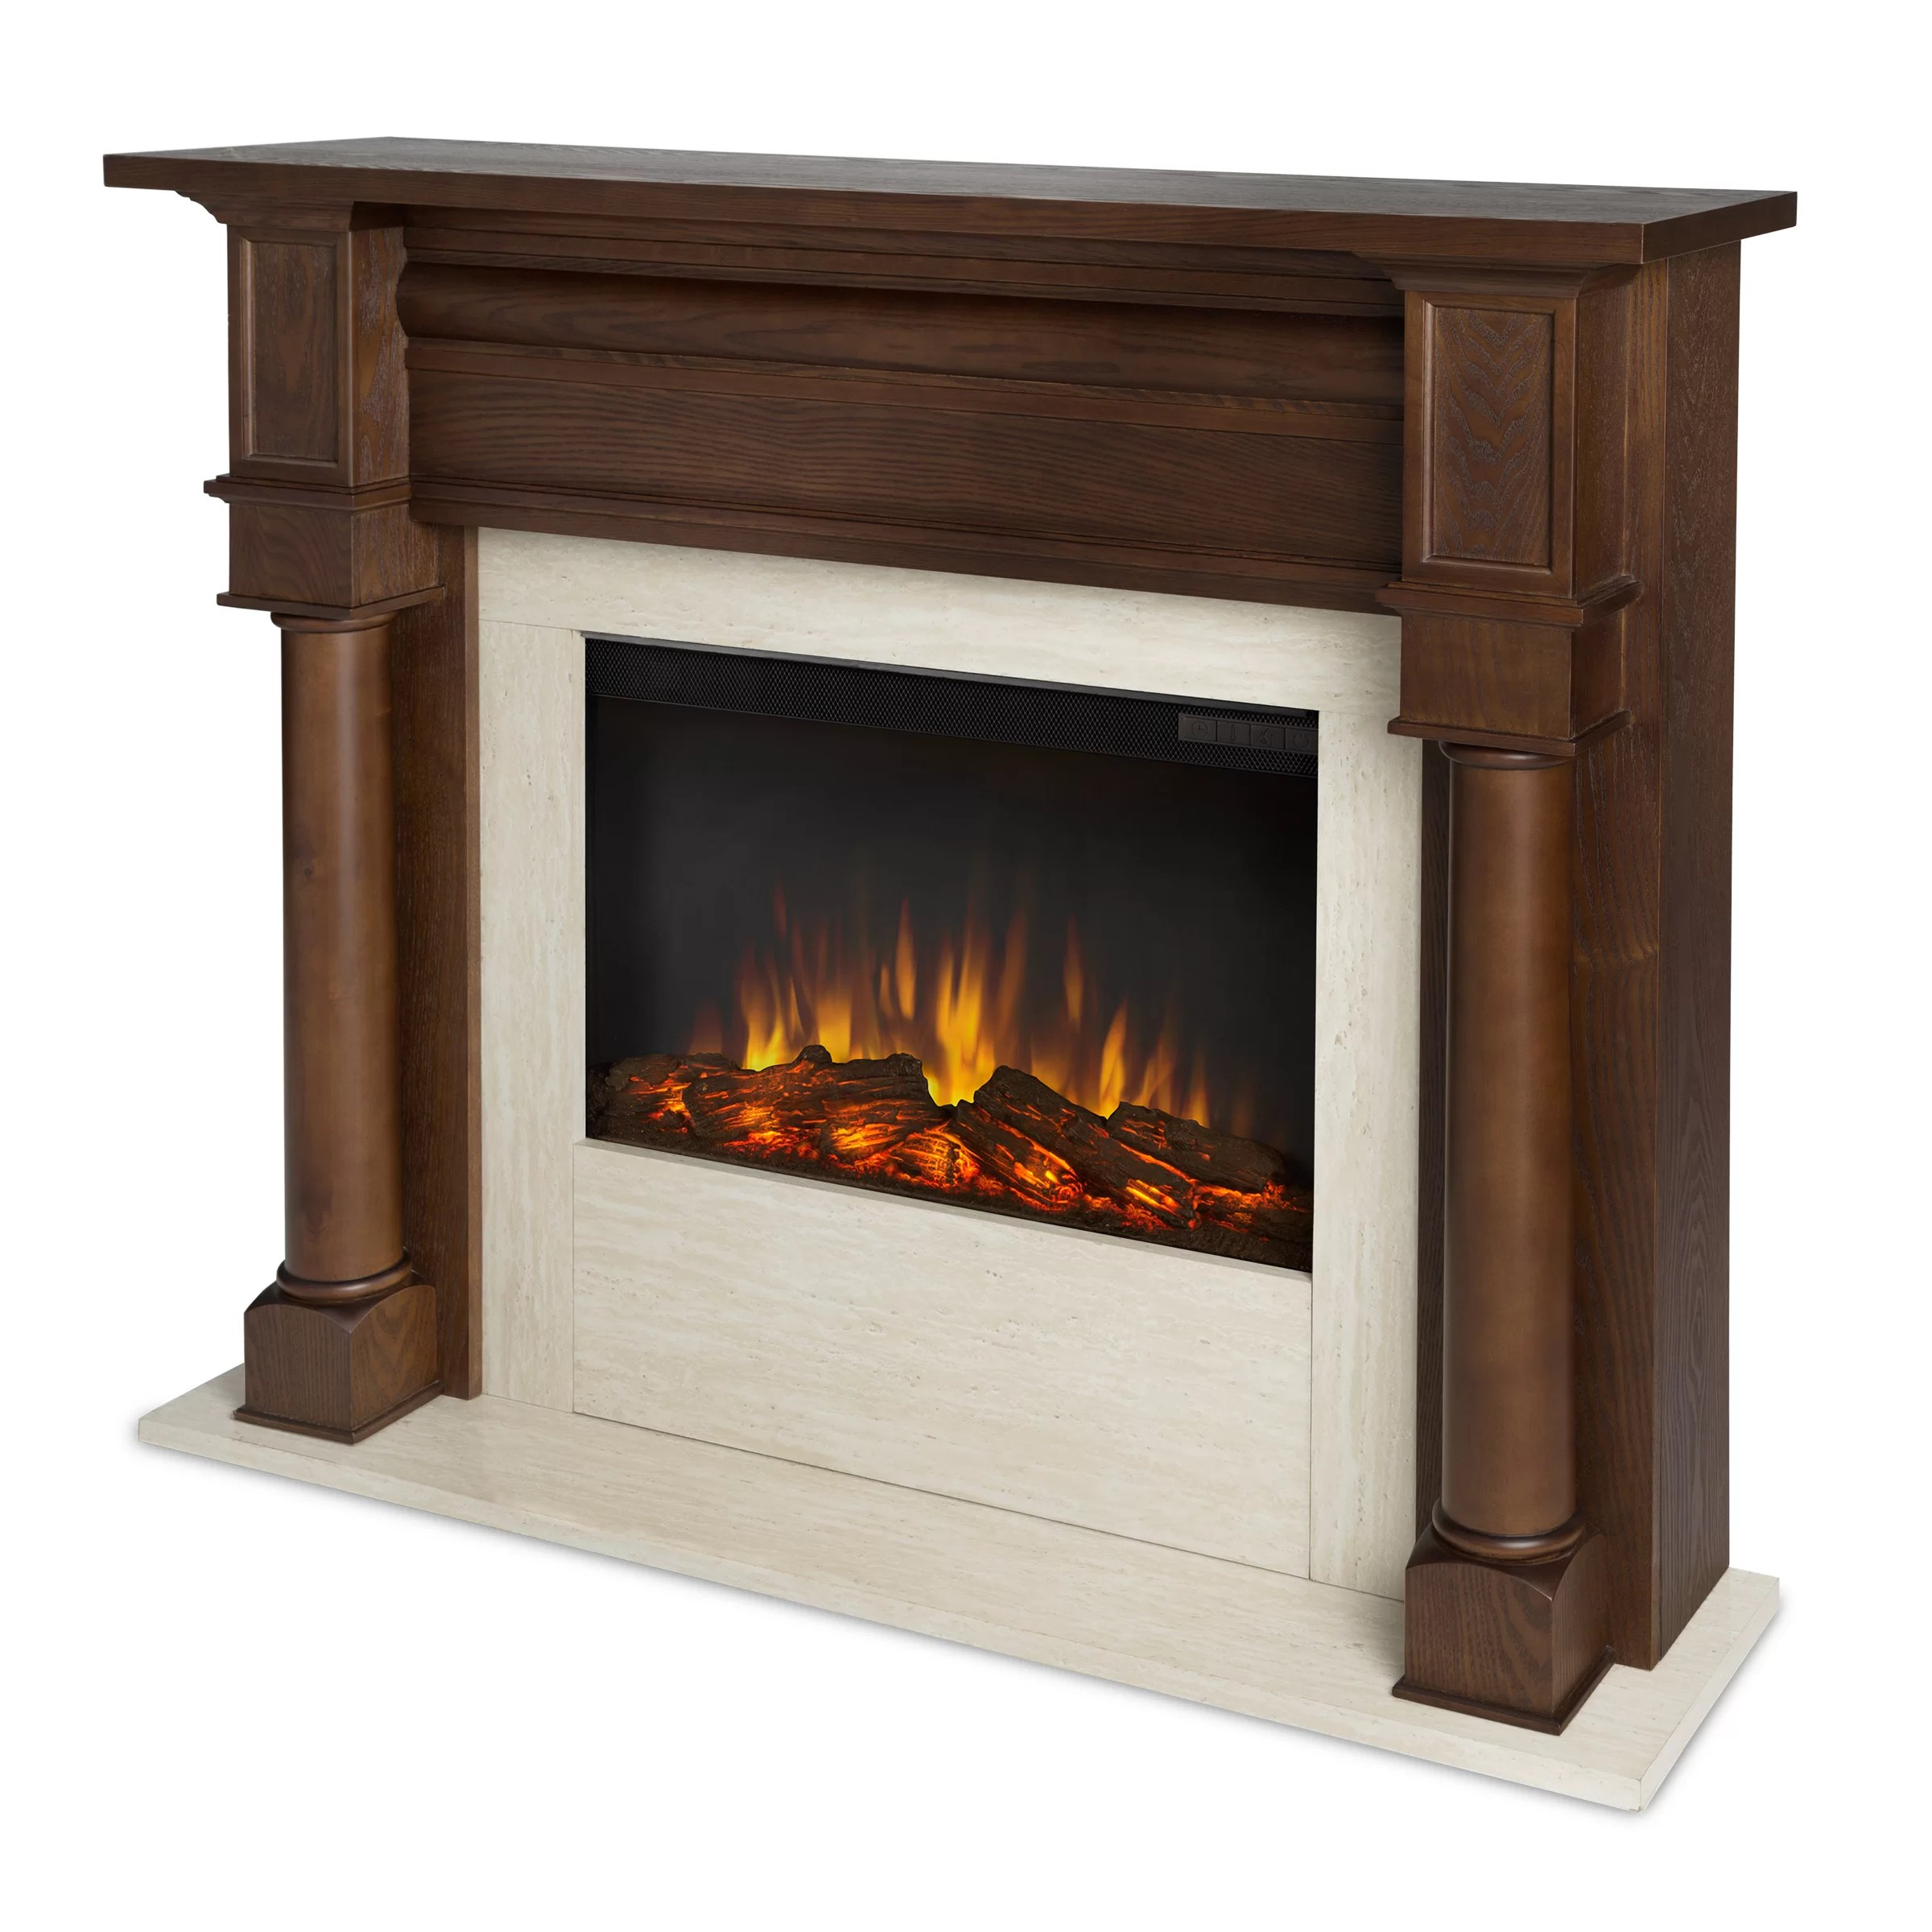 Electric Fireplace Reviews Real Flame Berkeley Electric Fireplace & Reviews | Wayfair